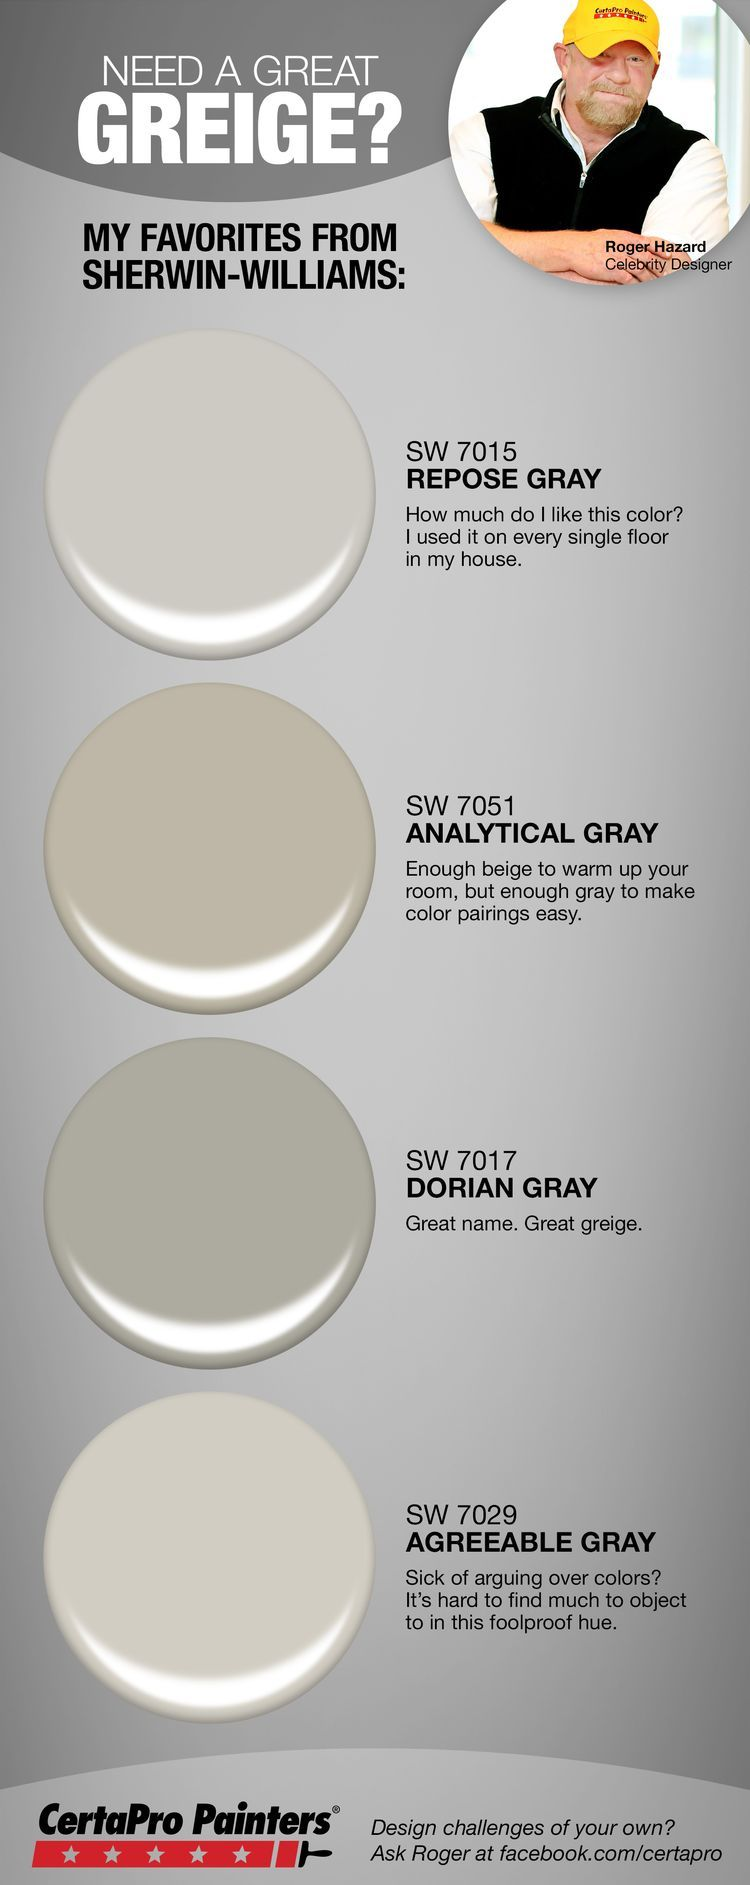 Pin by carrol harris on paint pinterest house paint ideas and